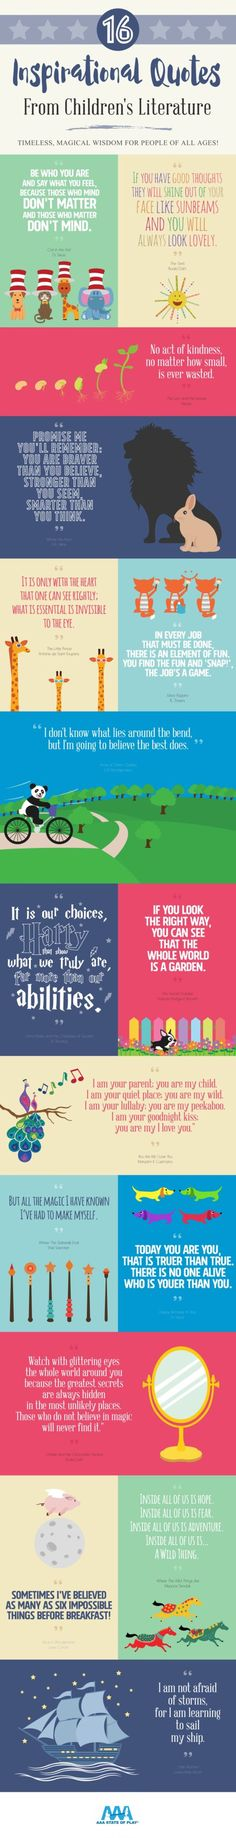 Inspirational quotes from childrens books #infographic